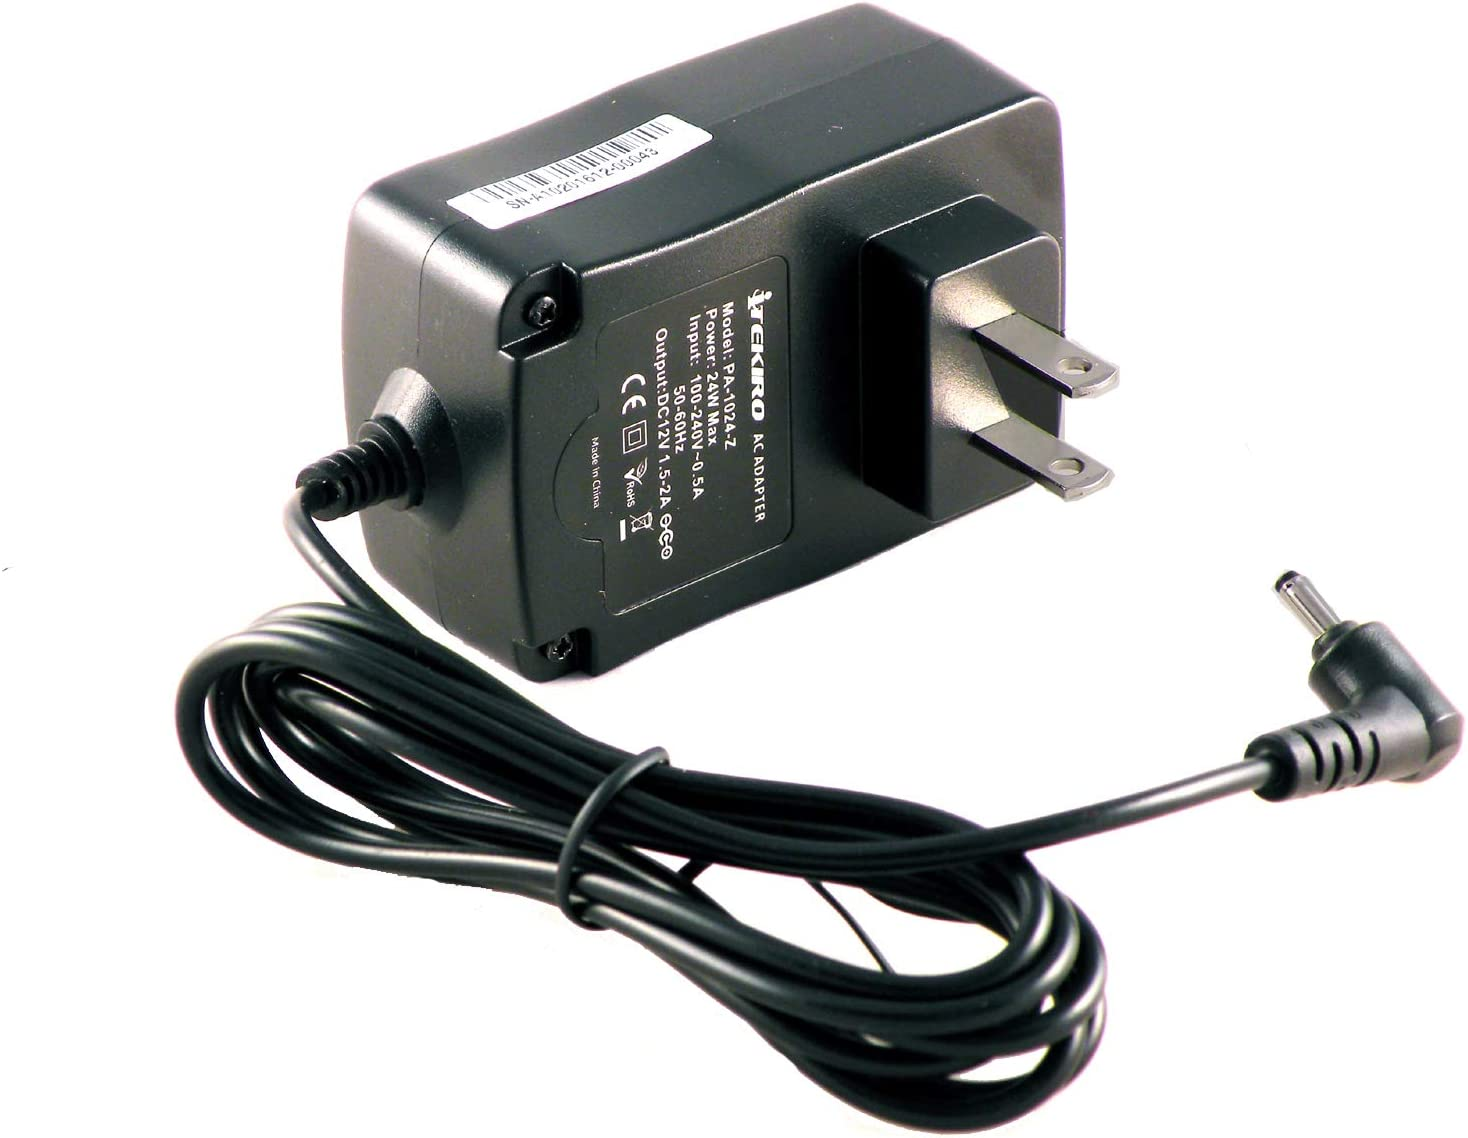 iTEKIRO 6.5 Ft Wall Charger for Acer Aspire Switch 10 SW5-011, SW5-012, SW5-014, SW5-017p; Aspire Switch 11 SW5-111; Acer Iconia A100, A200, A210, A500, A501, Iconia W3, W3-810; Gateway TP Series A60